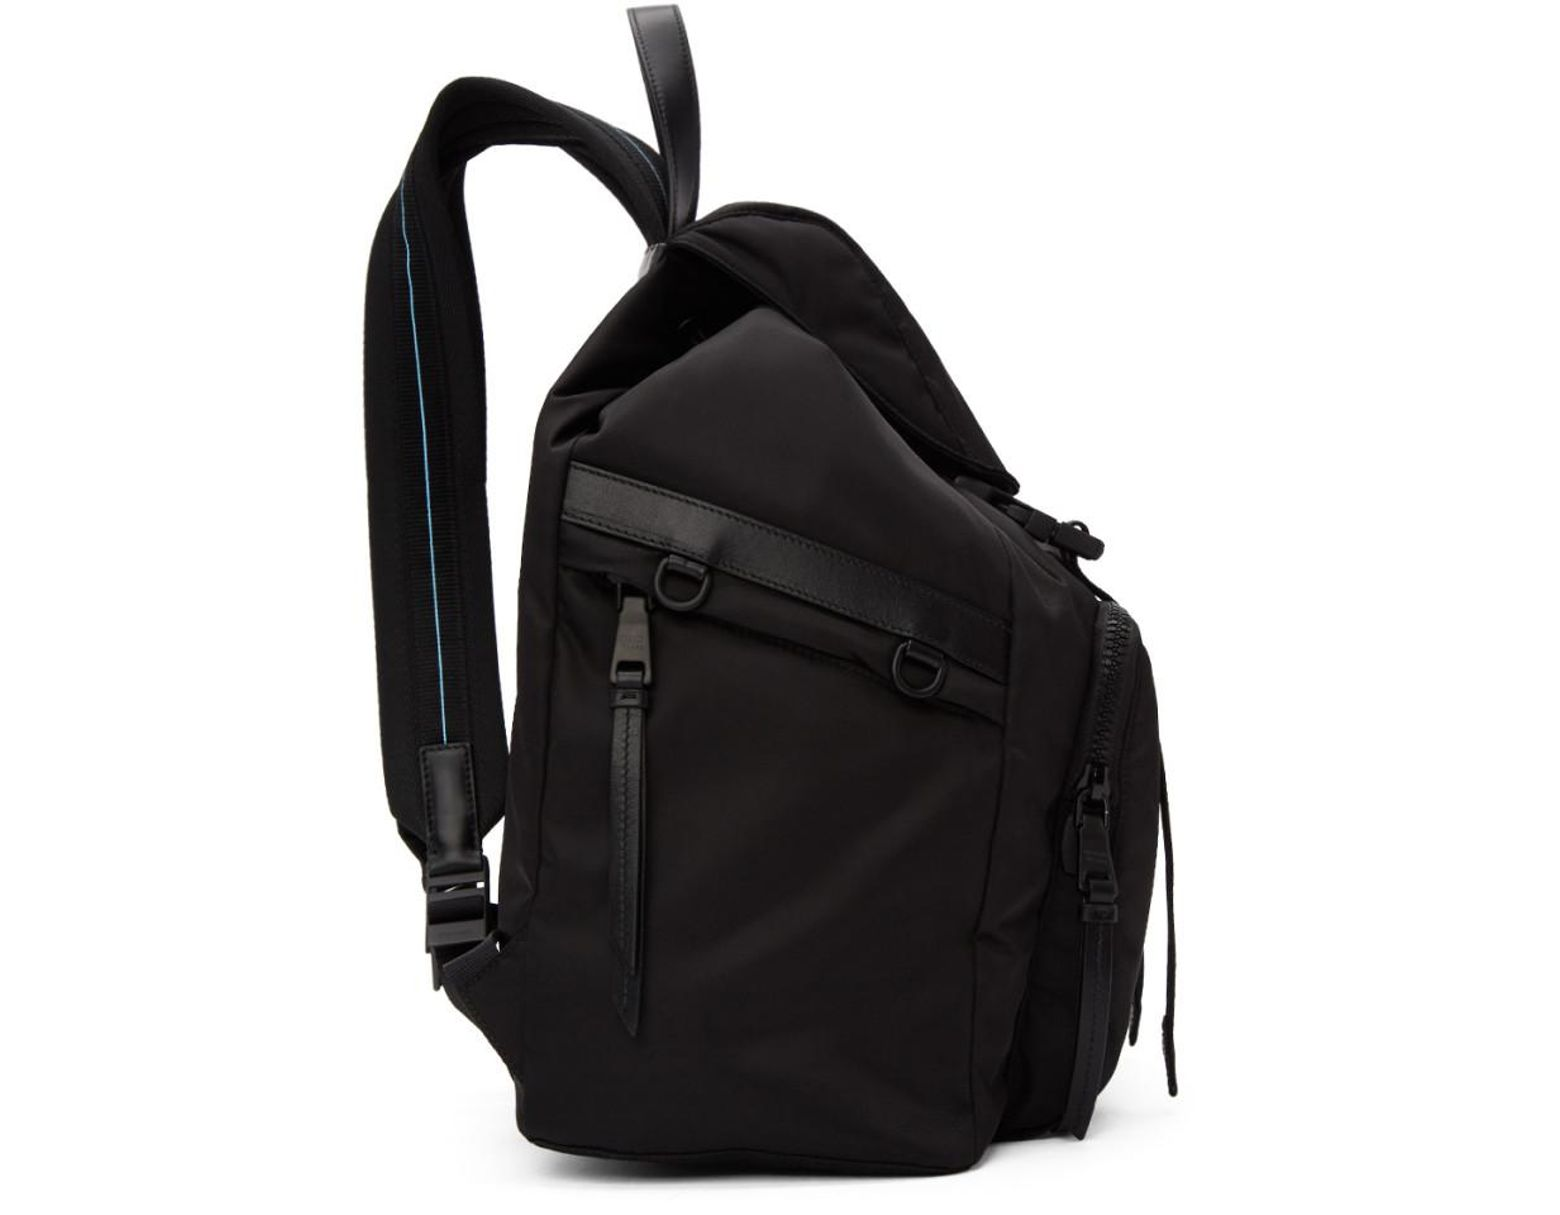 de46dc42b129ab Prada Black Nylon Logo Backpack in Black - Save 35% - Lyst